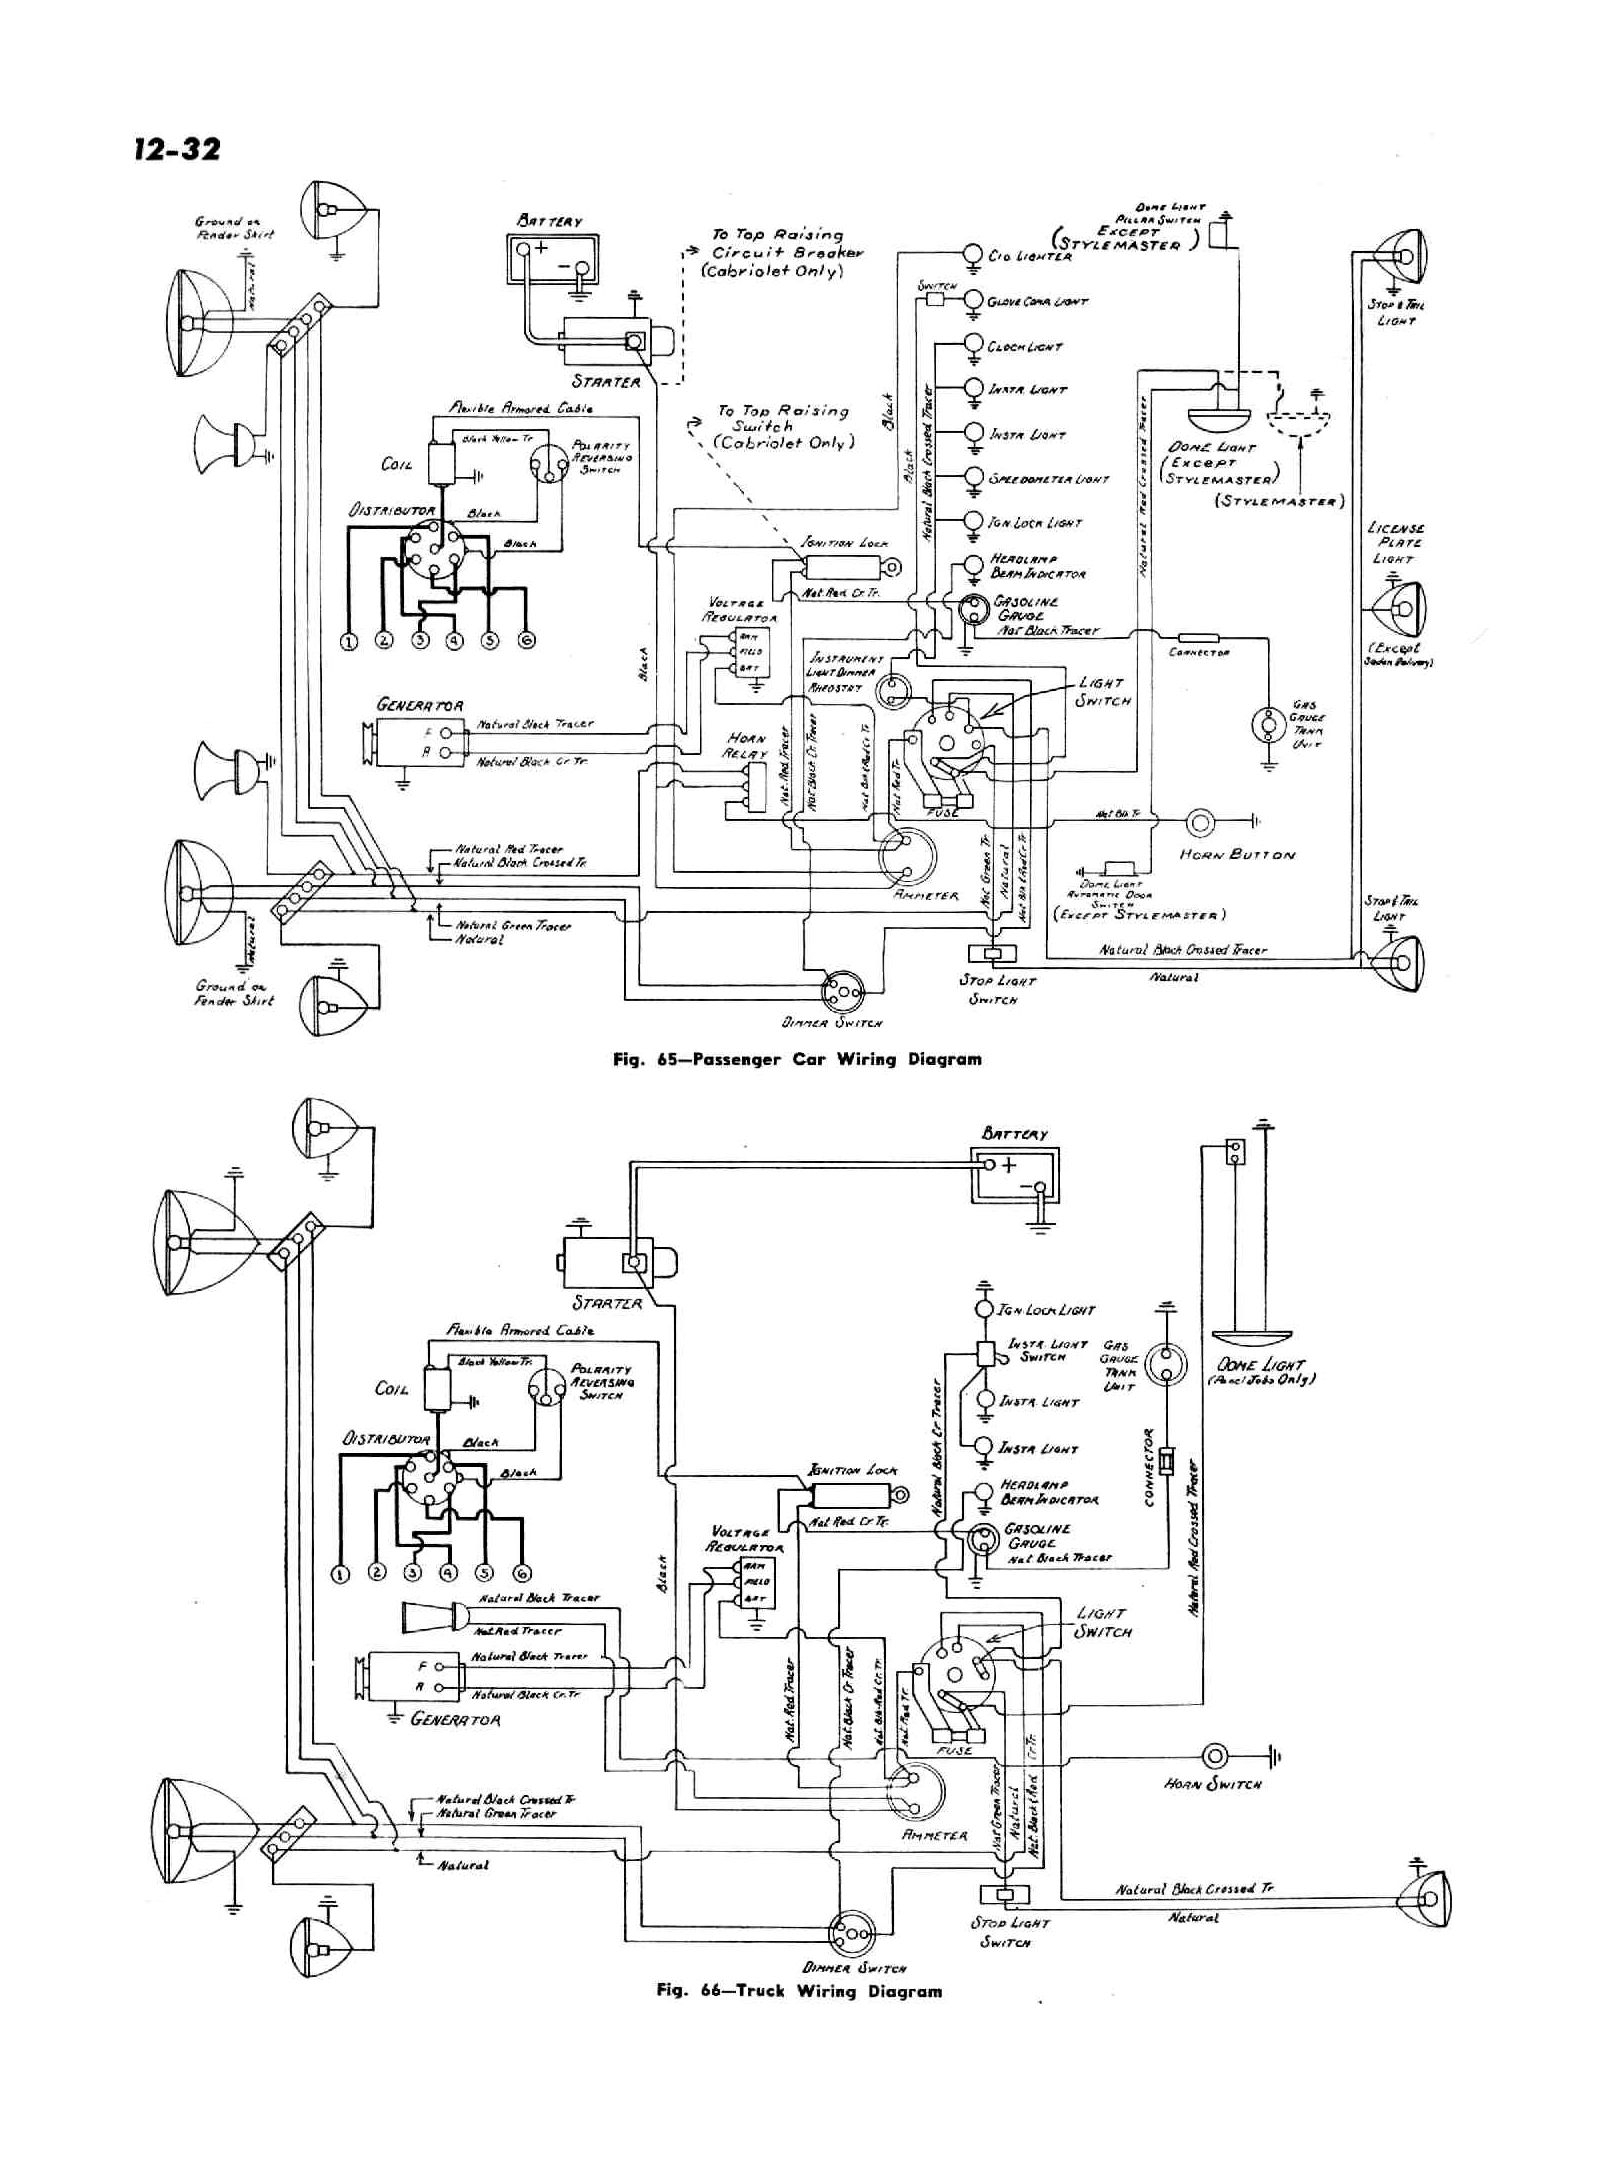 chevy wiring diagrams with 6 volt generator wiring diagram?resize\=665%2C899\&ssl\=1 1941 farmall a wiring harness 6 volt diagram wiring diagram 66 Plymouth at eliteediting.co